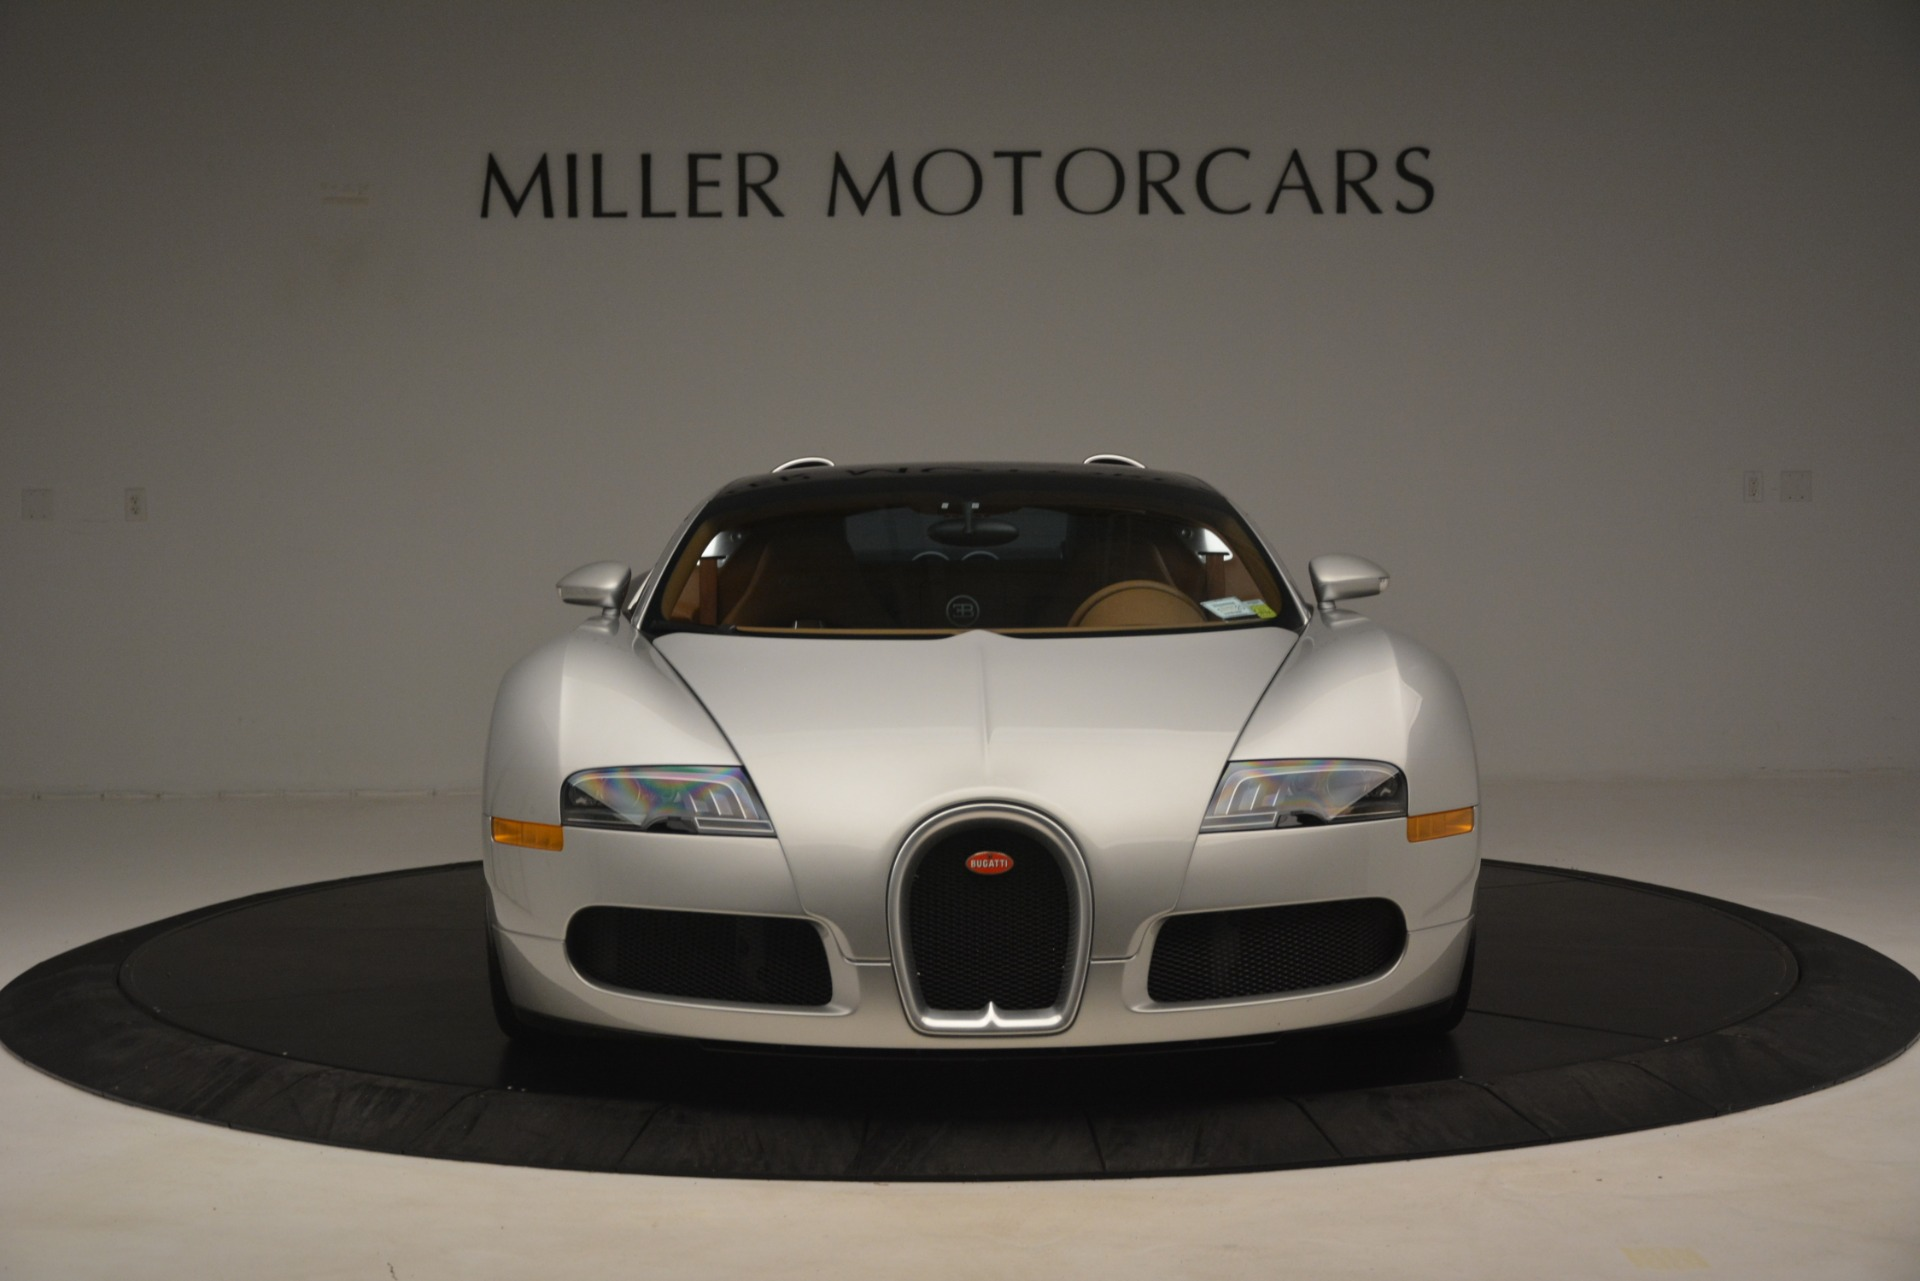 Used 2010 Bugatti Veyron 16.4 Grand Sport For Sale In Greenwich, CT. Alfa Romeo of Greenwich, G149 3159_p22